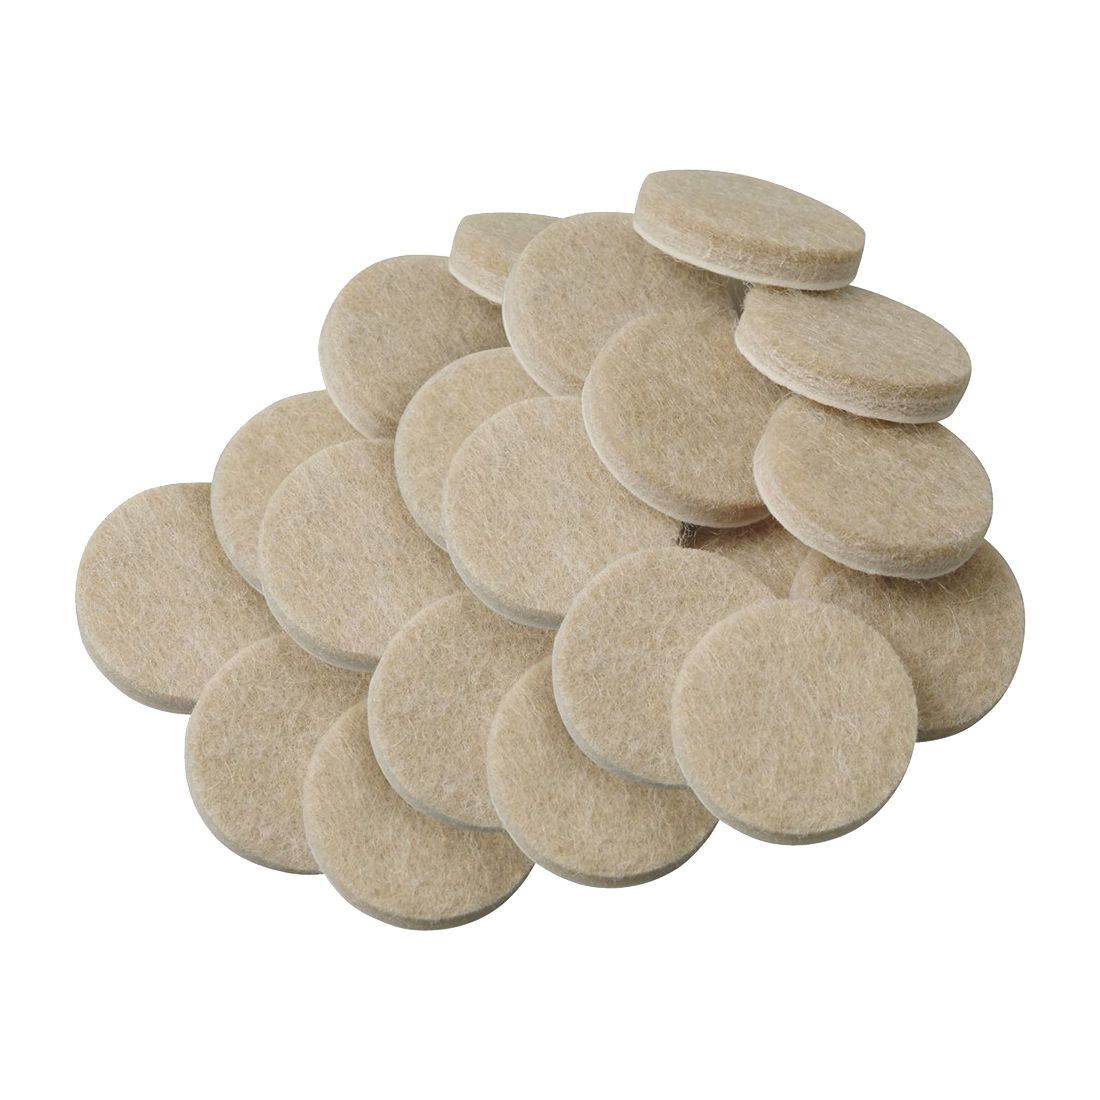 hot-sale-20pcs-self-stick-3-4-inch-furniture-felt-pads-for-hard-surfaces-oatmeal-round